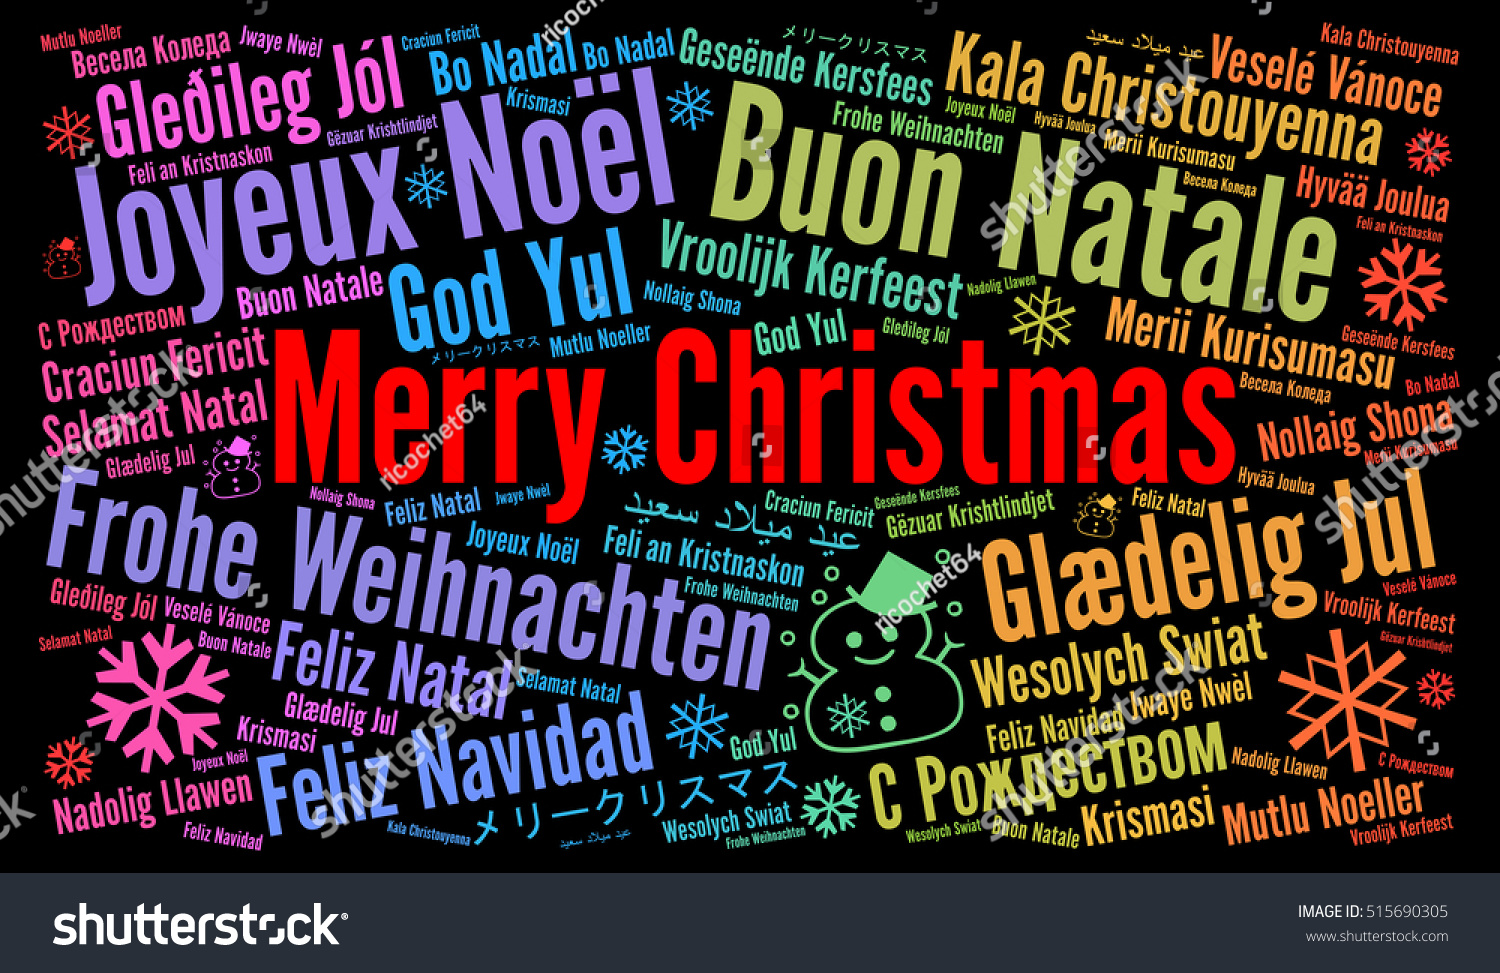 Merry Christmas Different Languages.Merry Christmas Different Languages Word Cloud Stock